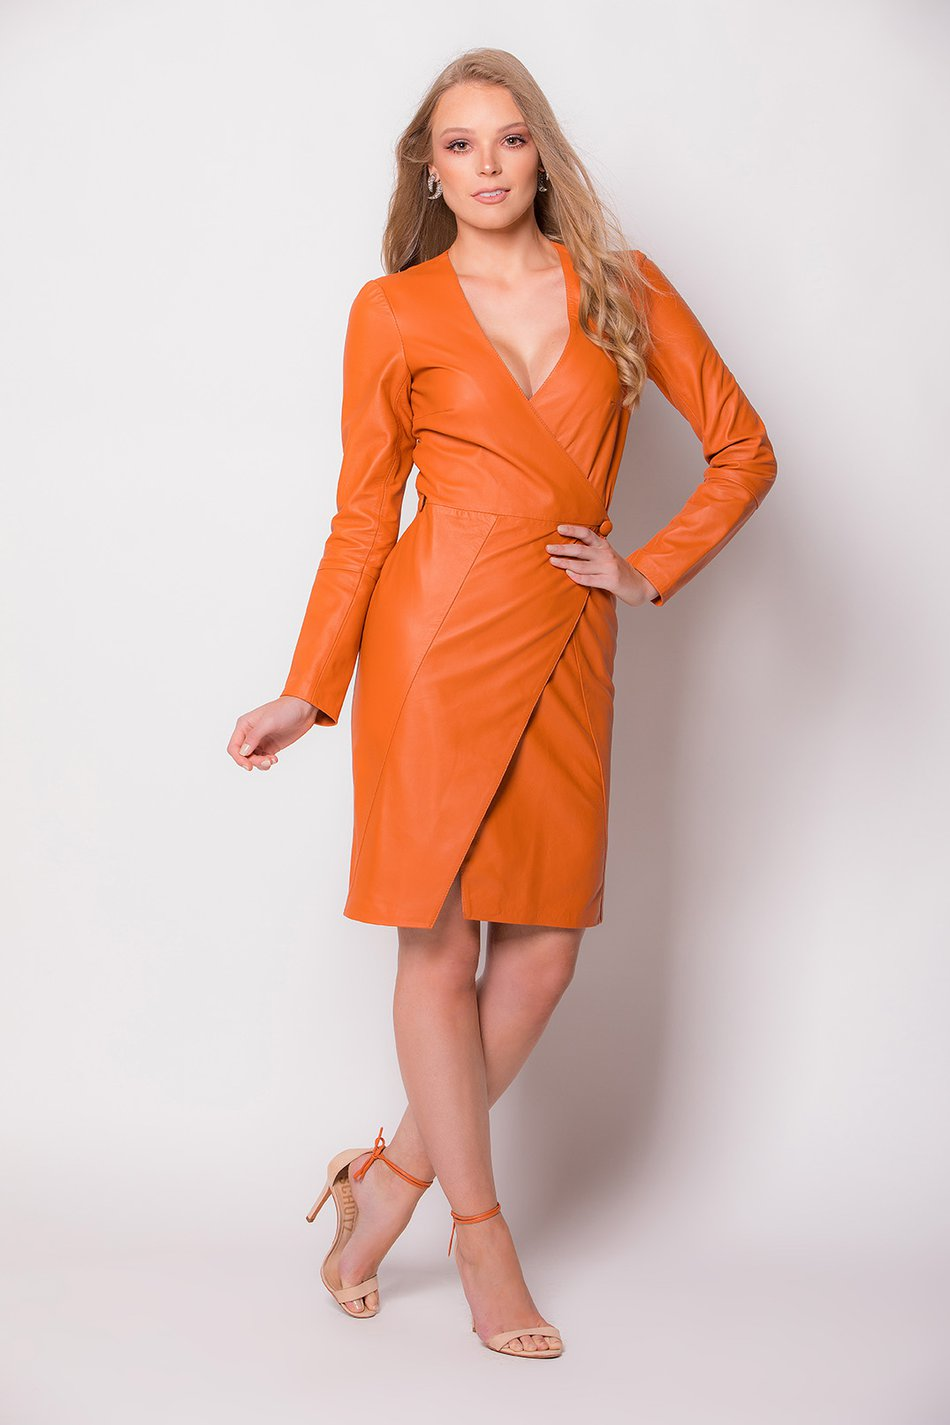 wrap dress laranja